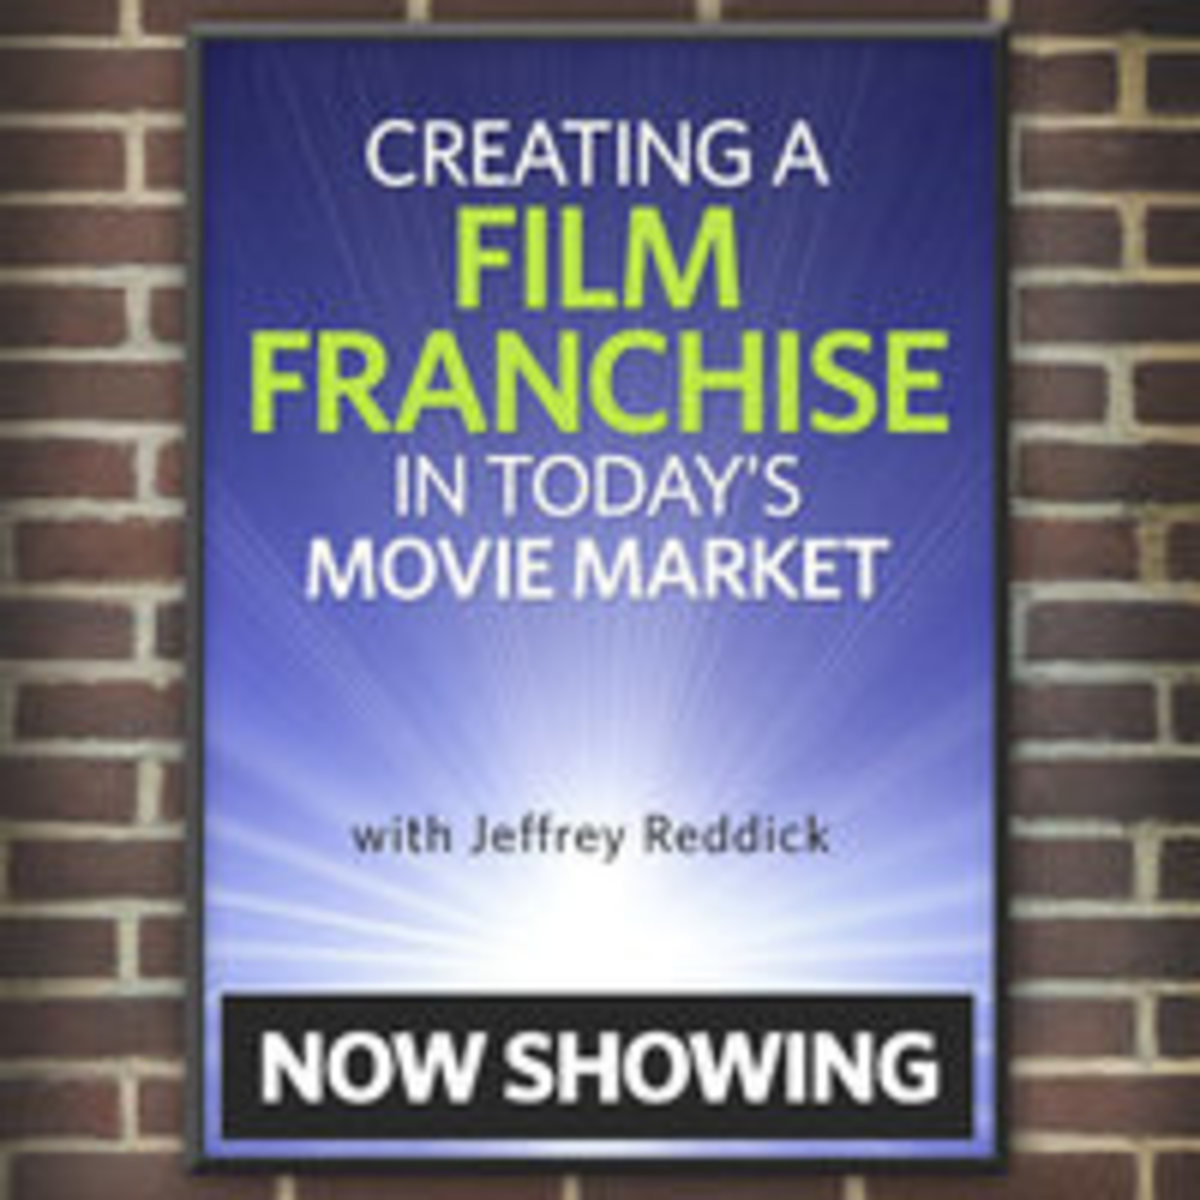 Creating A Film Franchise In Today's Movie Market